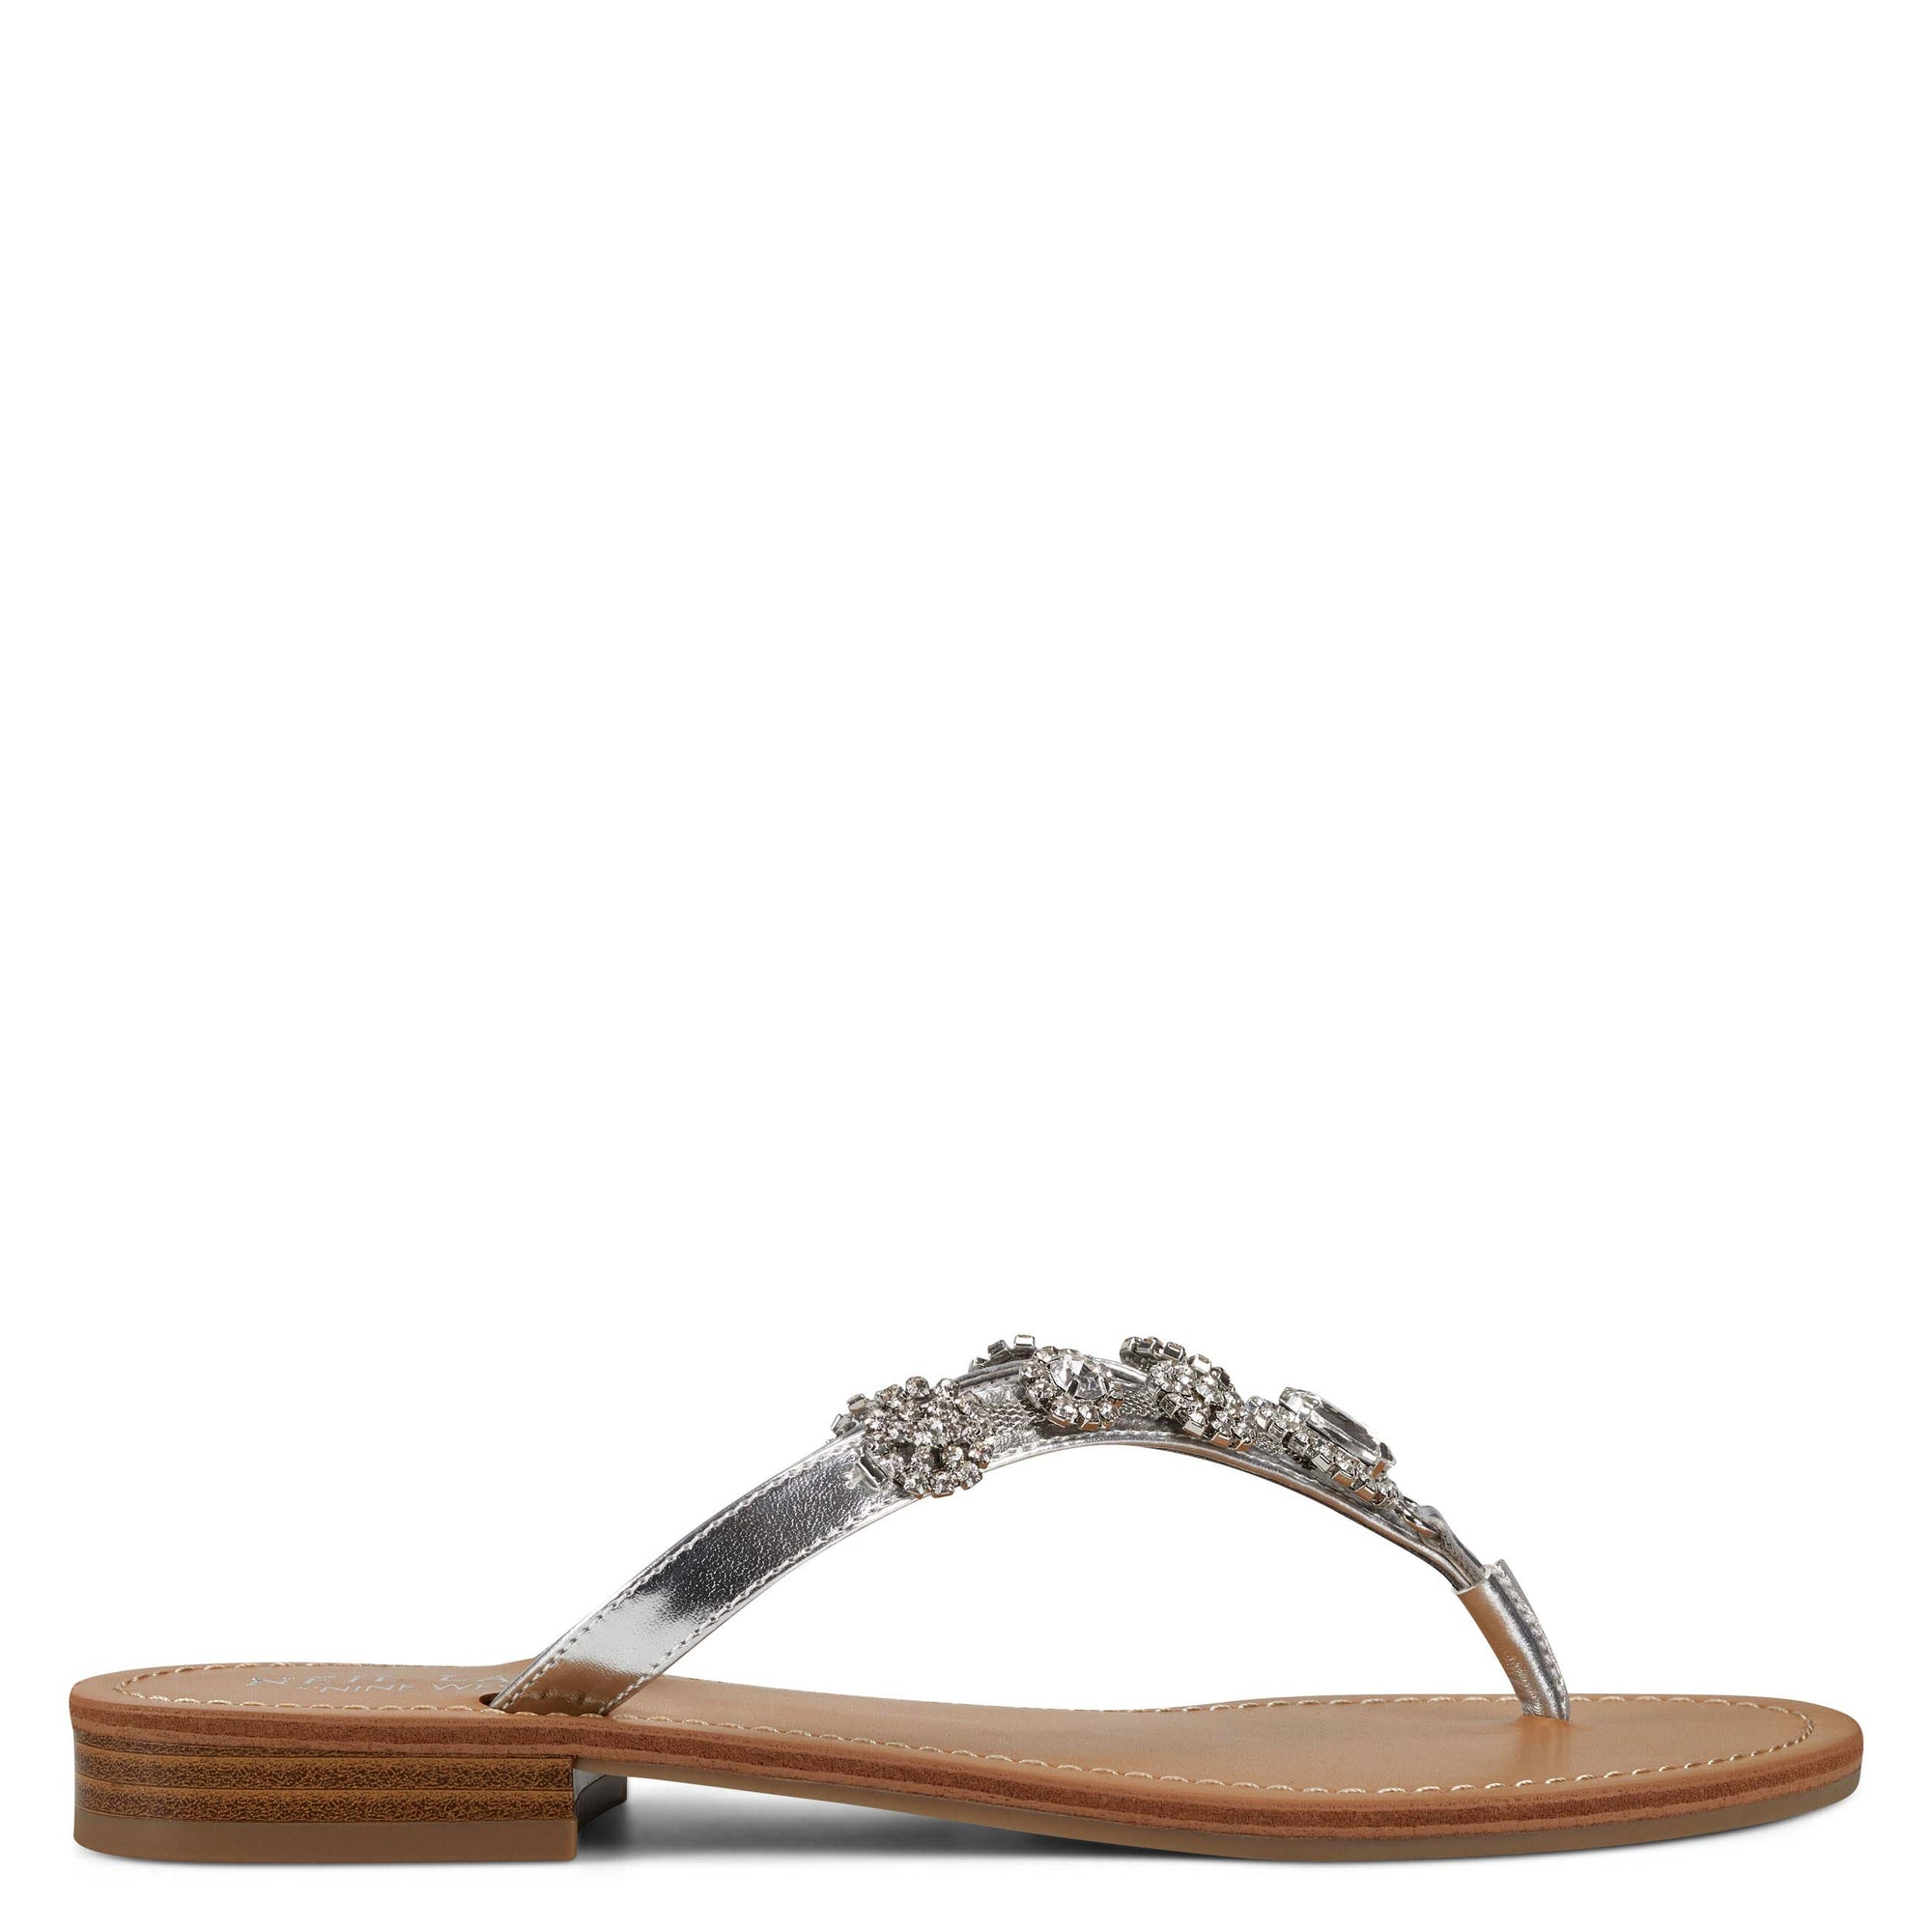 perfect-flat-slide-sandals-in-silver